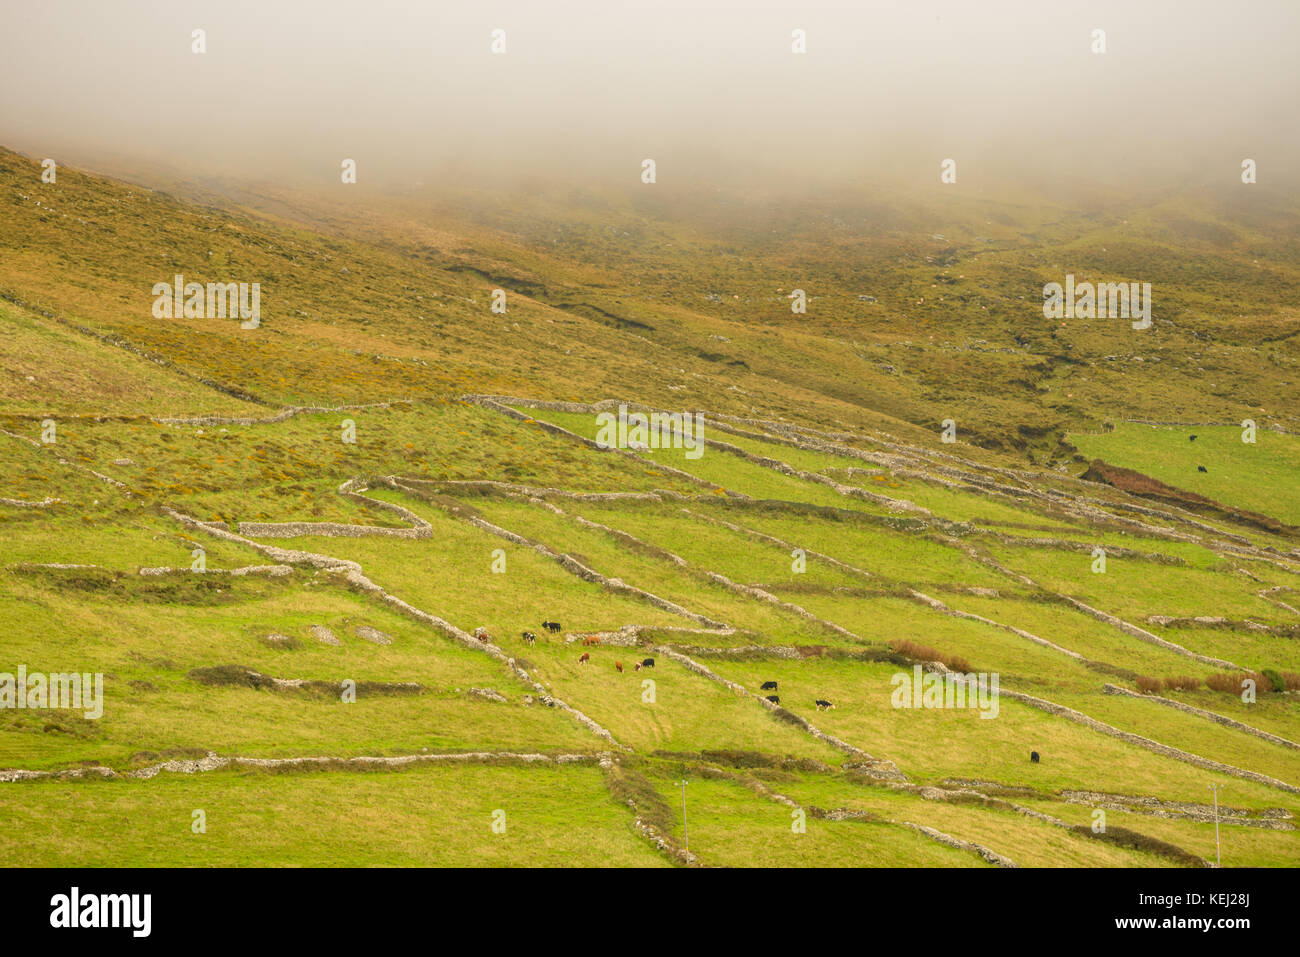 Irish coutryside in Kerry - Ireland - Stock Image